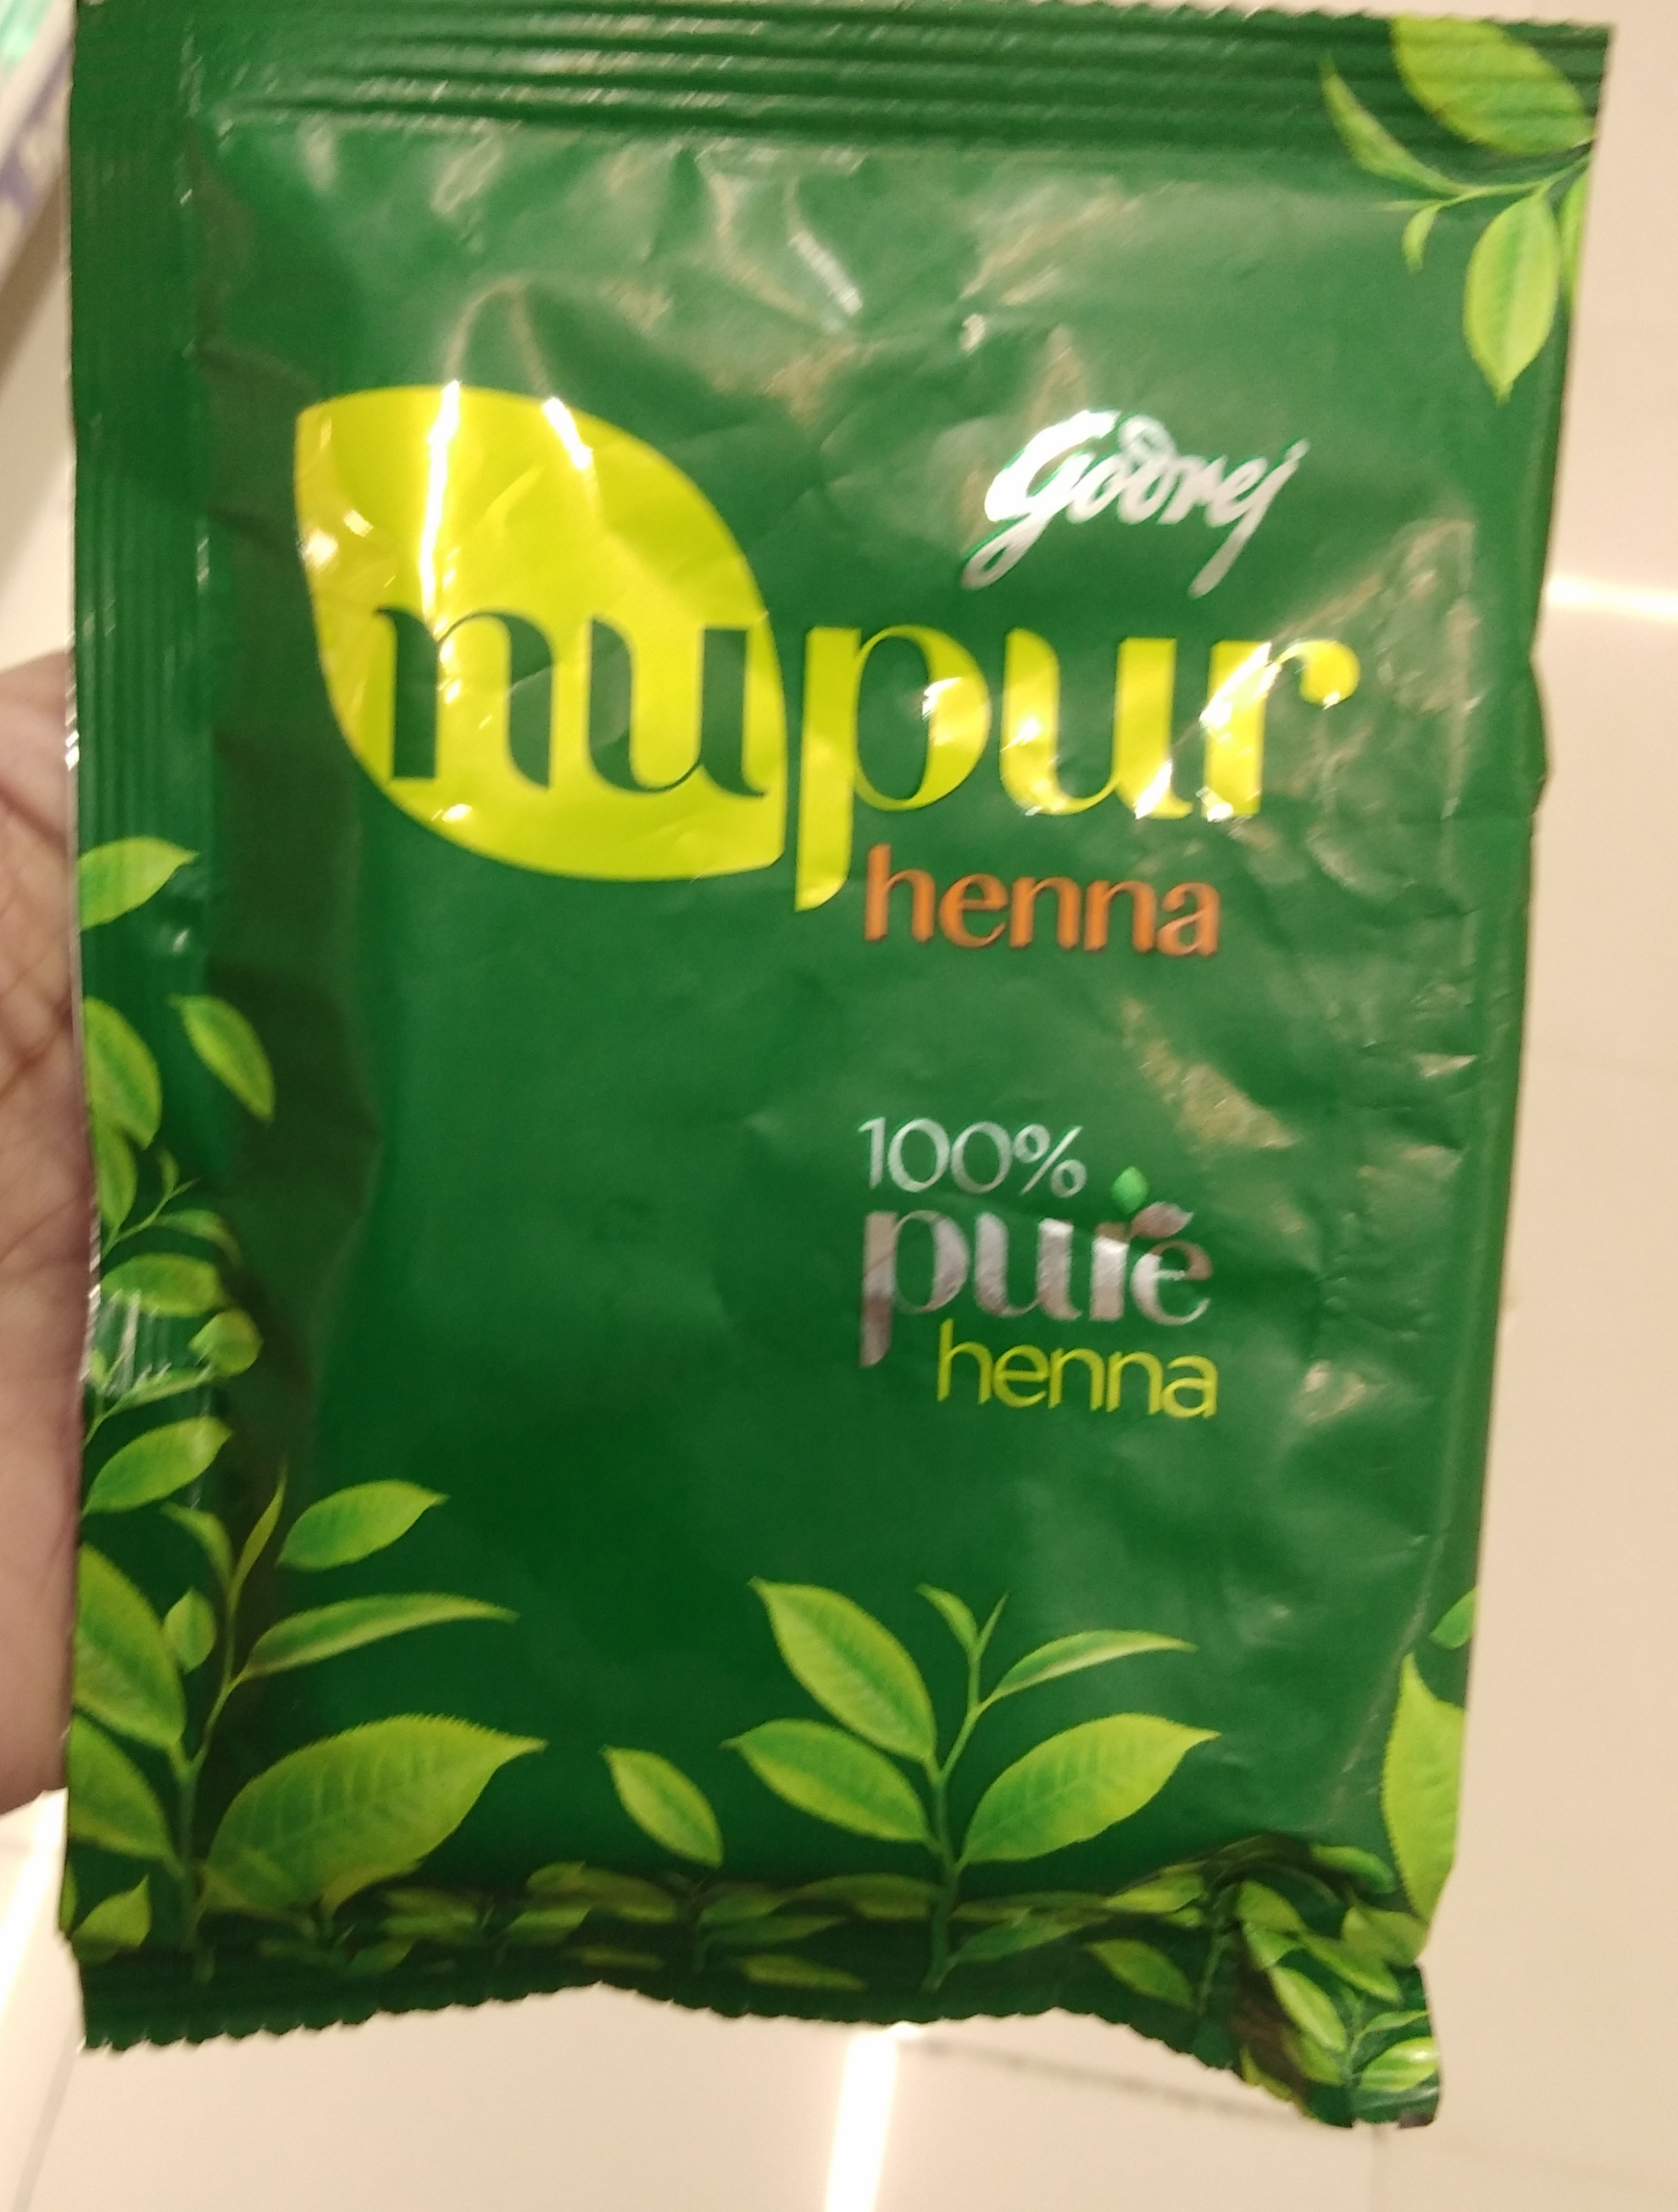 Godrej Nupur Henna Color-Gives color and prevents dandruff to an extent-By Nasreen-2